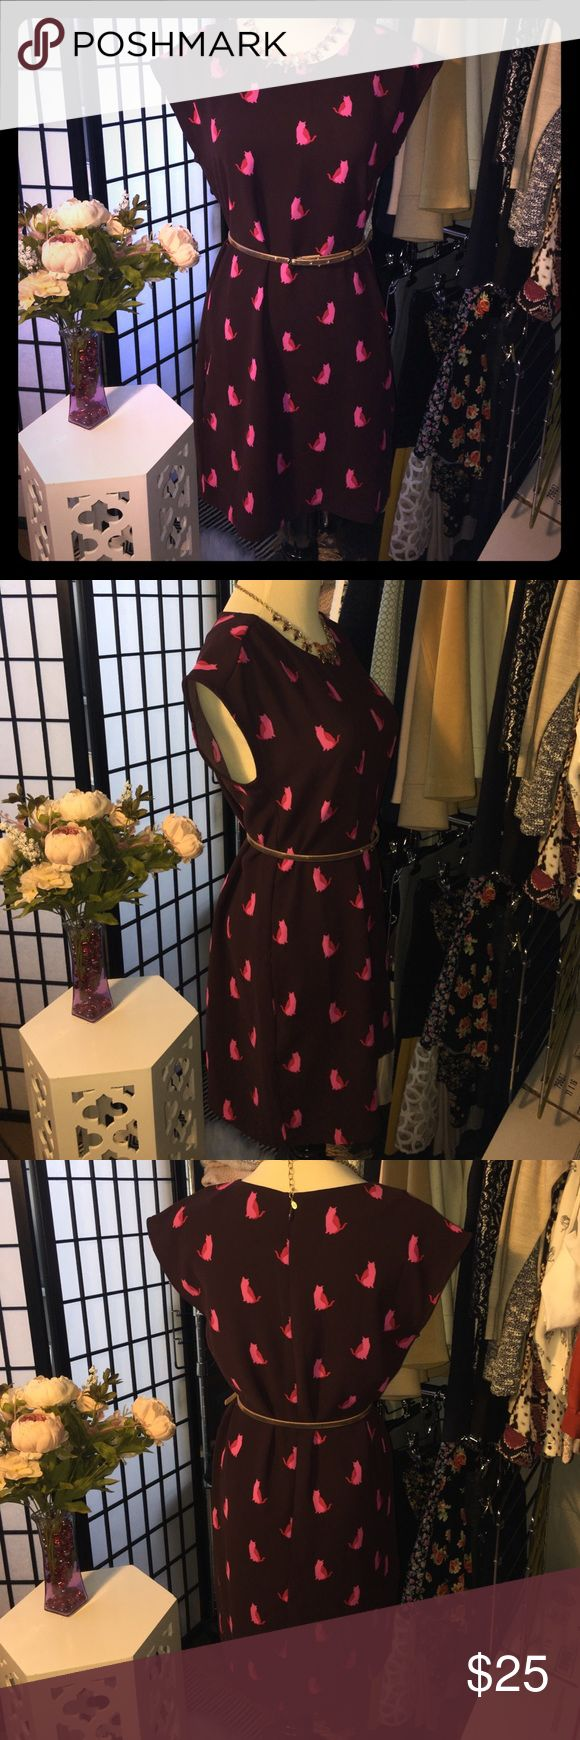 XS Ann Taylor Loft burgundy dress with pink cats XS Ann Taylor Loft dress, zipper back, burgundy color with pink cats pattern, belt not included Ann Taylor Loft Dresses